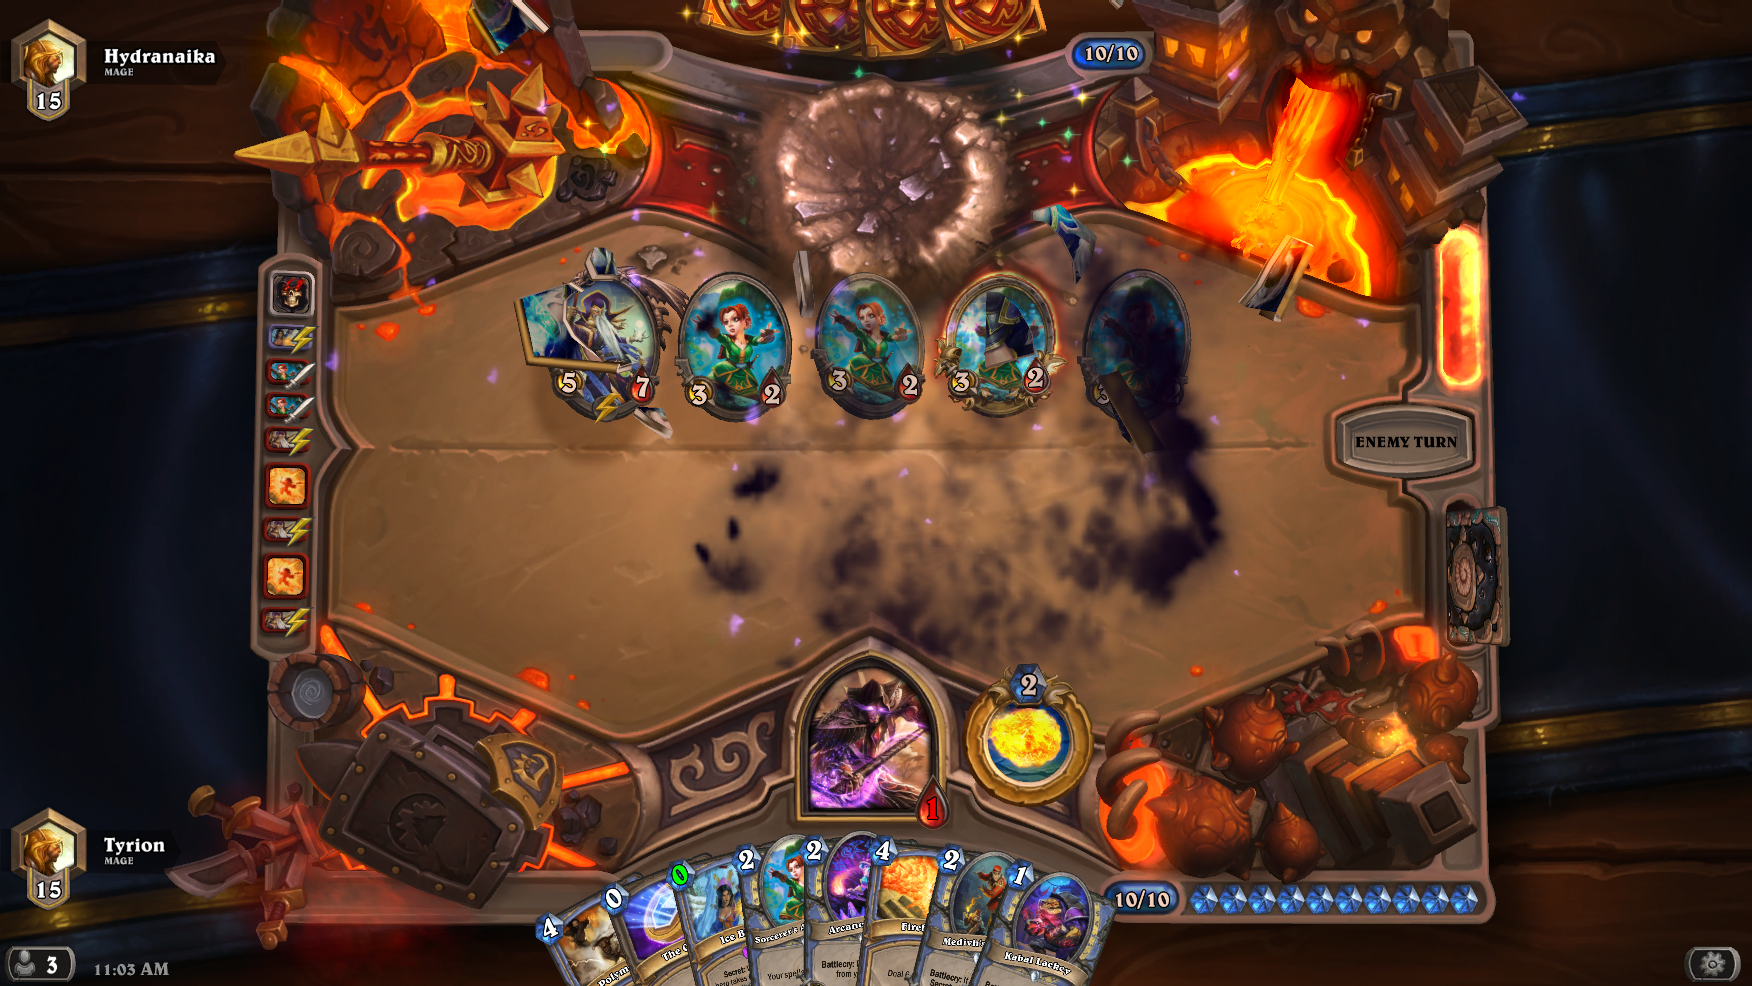 hearthstone bad matchmaking While cube hearthstone bad matchmaking the dominant strategy, pure control warlock is very much a competitive choice that can see great success on ladder.